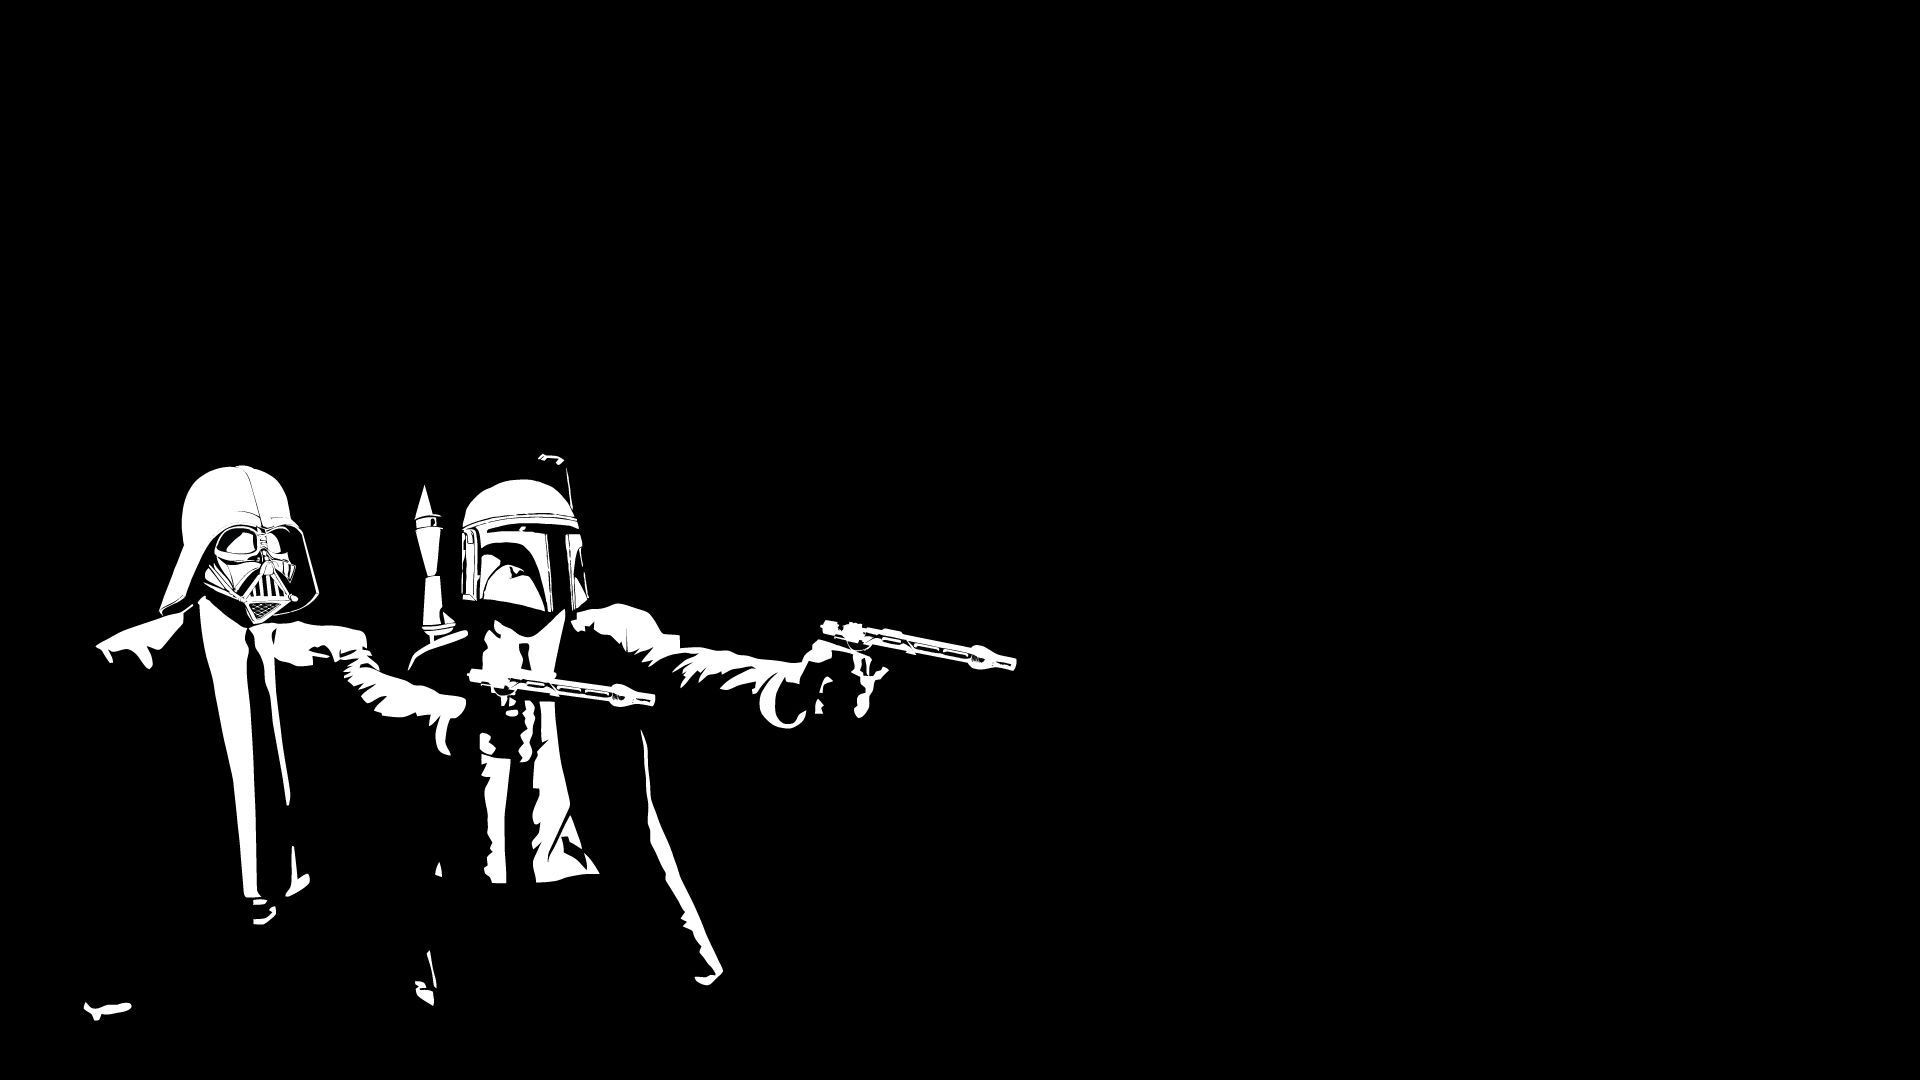 You can view, download and comment on Star Wars Pulp Fiction Crossover free hd  wallpapers